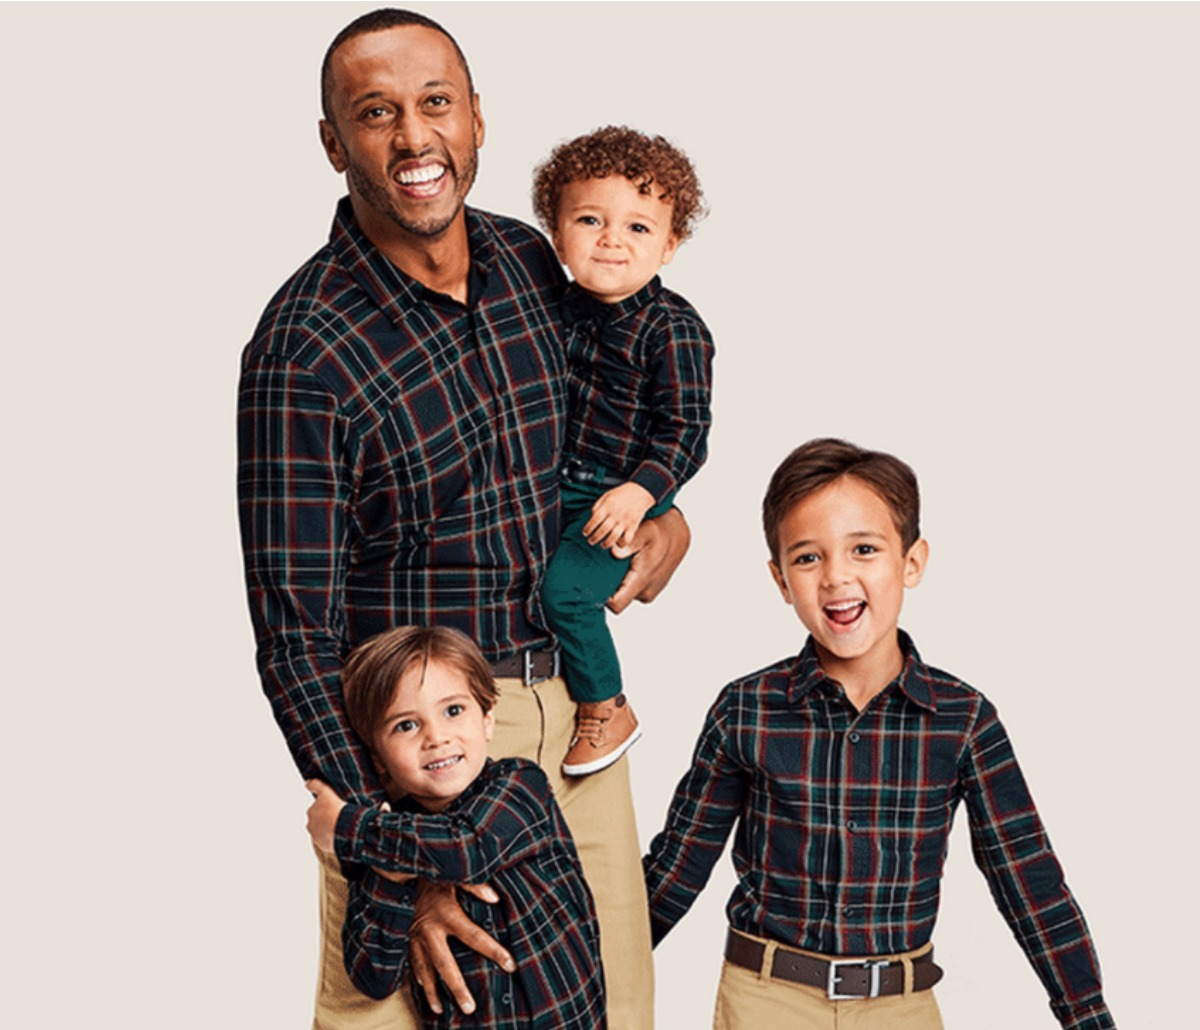 Dad and sons wearing matching shirts